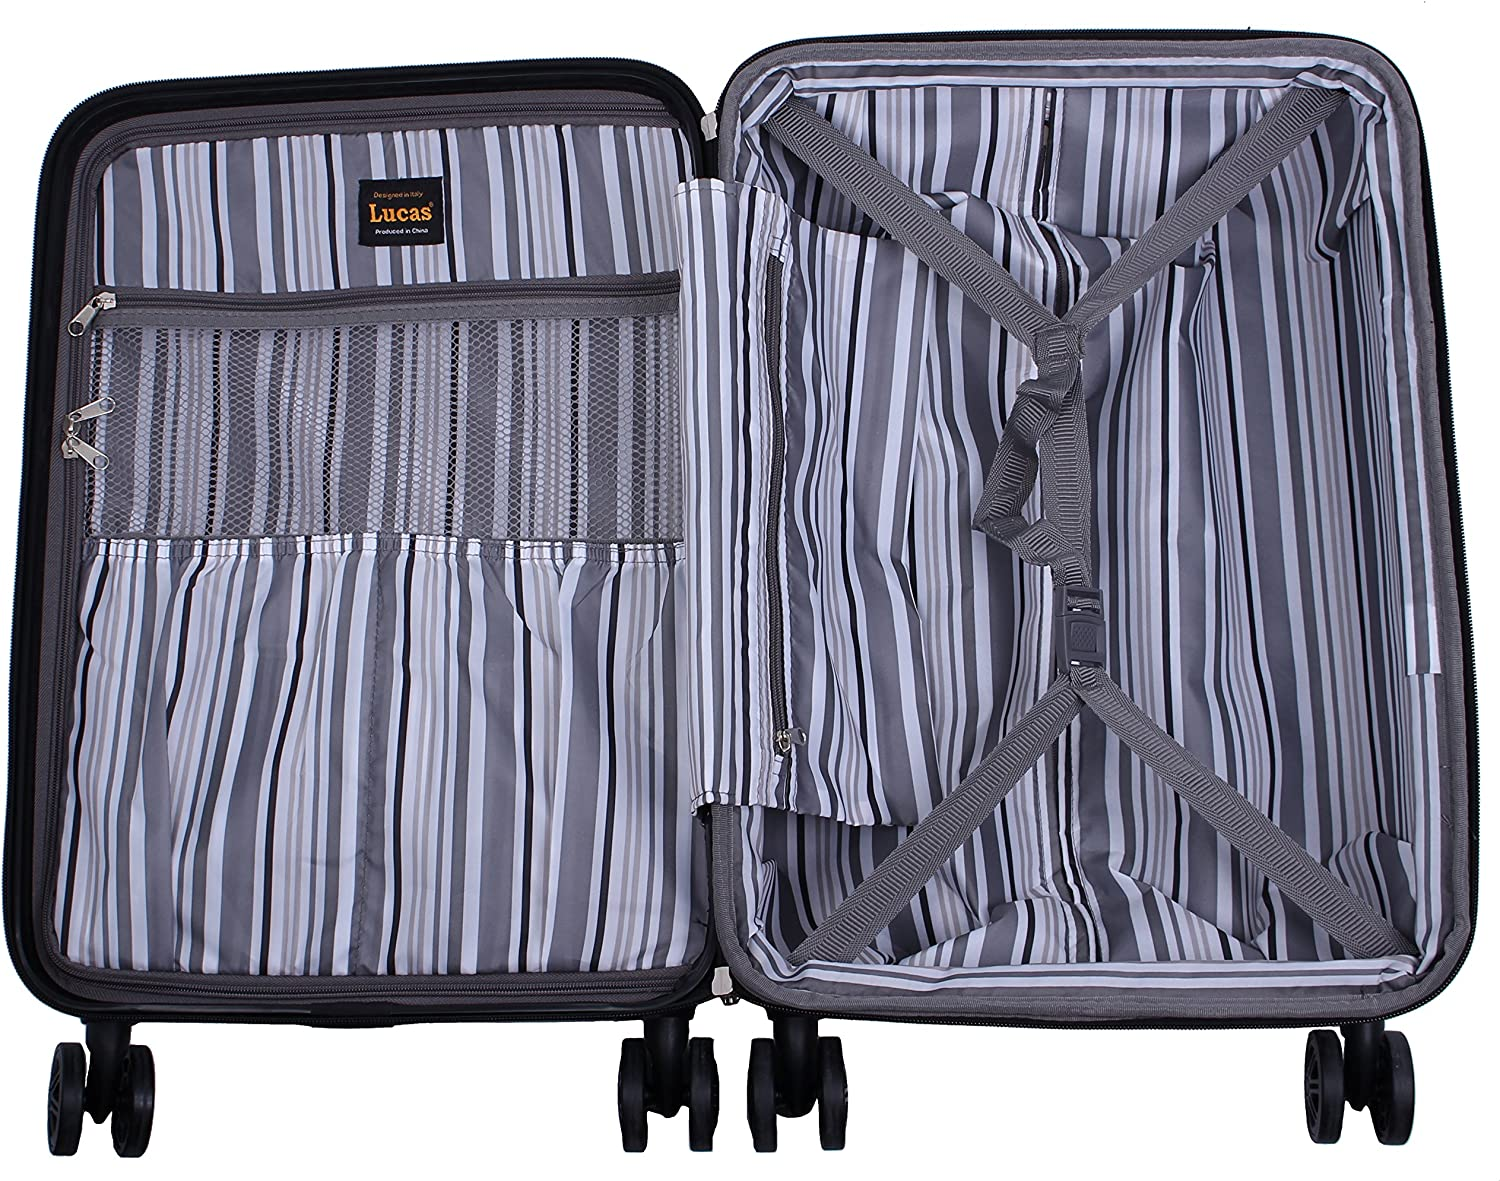 Hardside Suitcase Expandable Large Size Checked Bag with 8-Rolling Spinner Wheels 31in, Stratus Olive Lightweight Scratch-Resistant Lucas 31 Inch Designer Luggage Collection ABS + PC